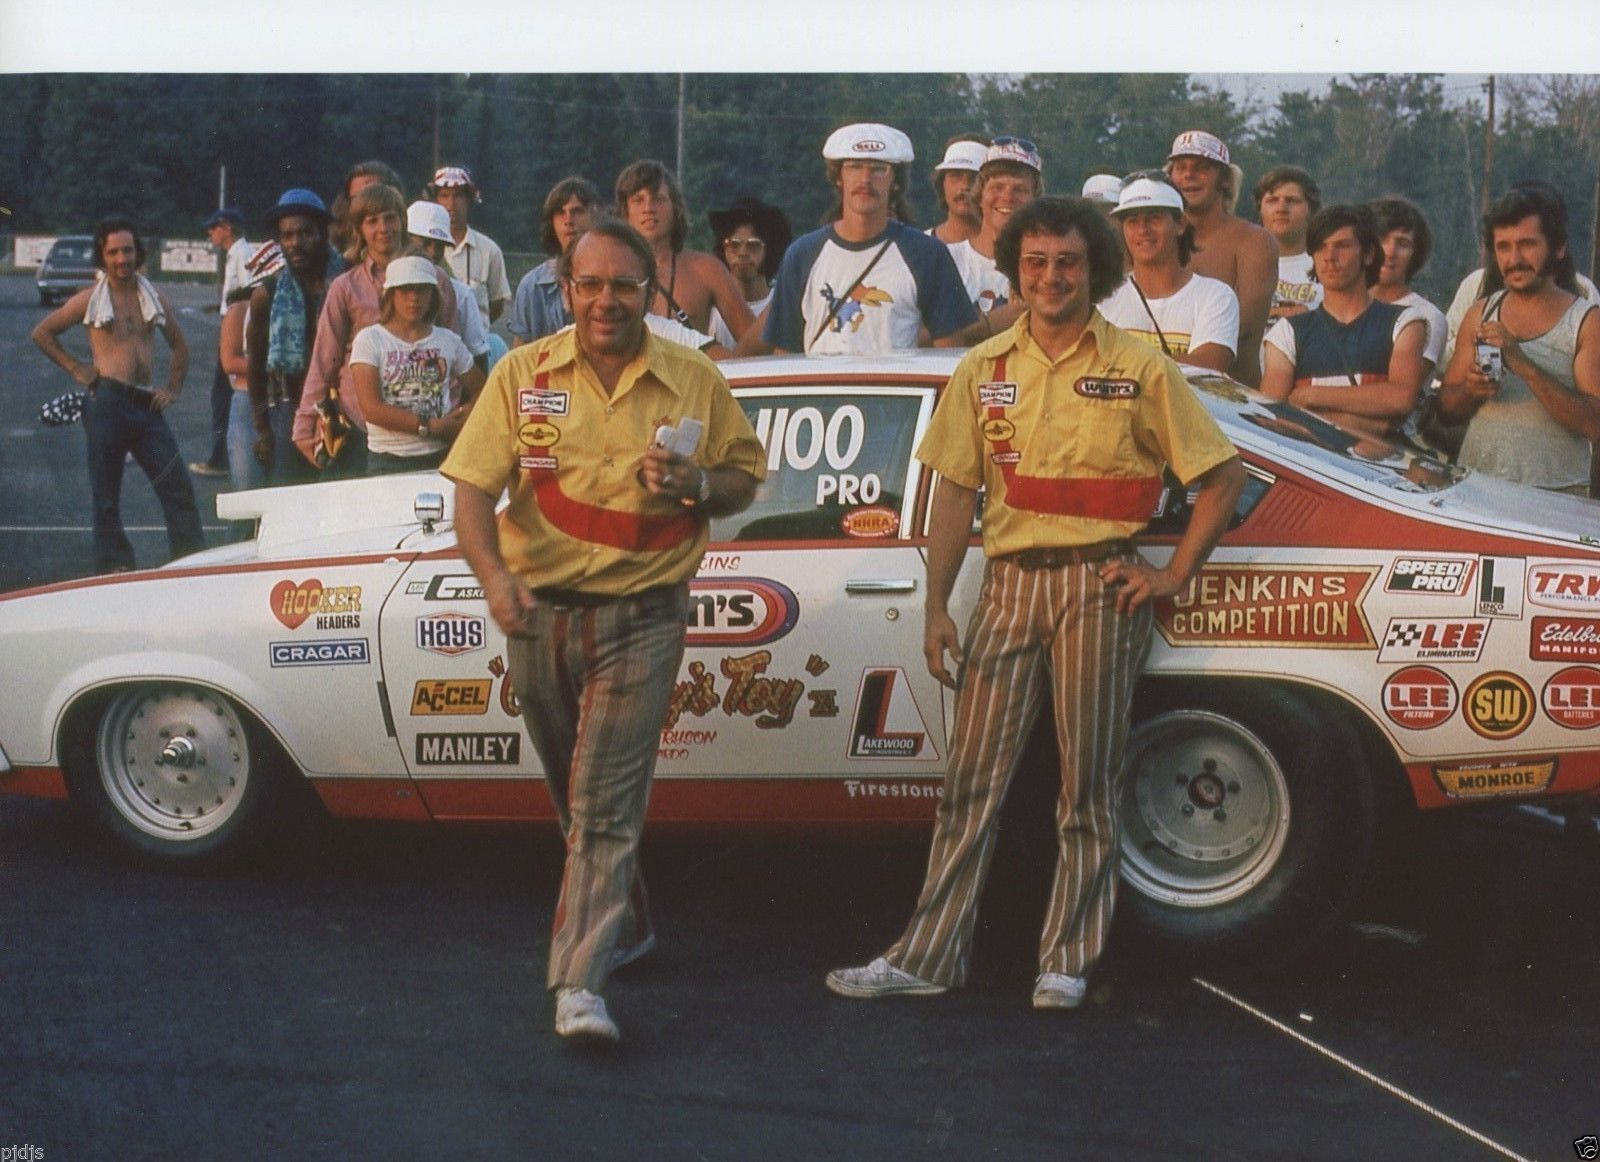 Bill Jenkins And Larry Lombardoin In Winners Circle With Their Car Grumpys Toy Drag Racing Cars Nhra Drag Racing Vintage Racing